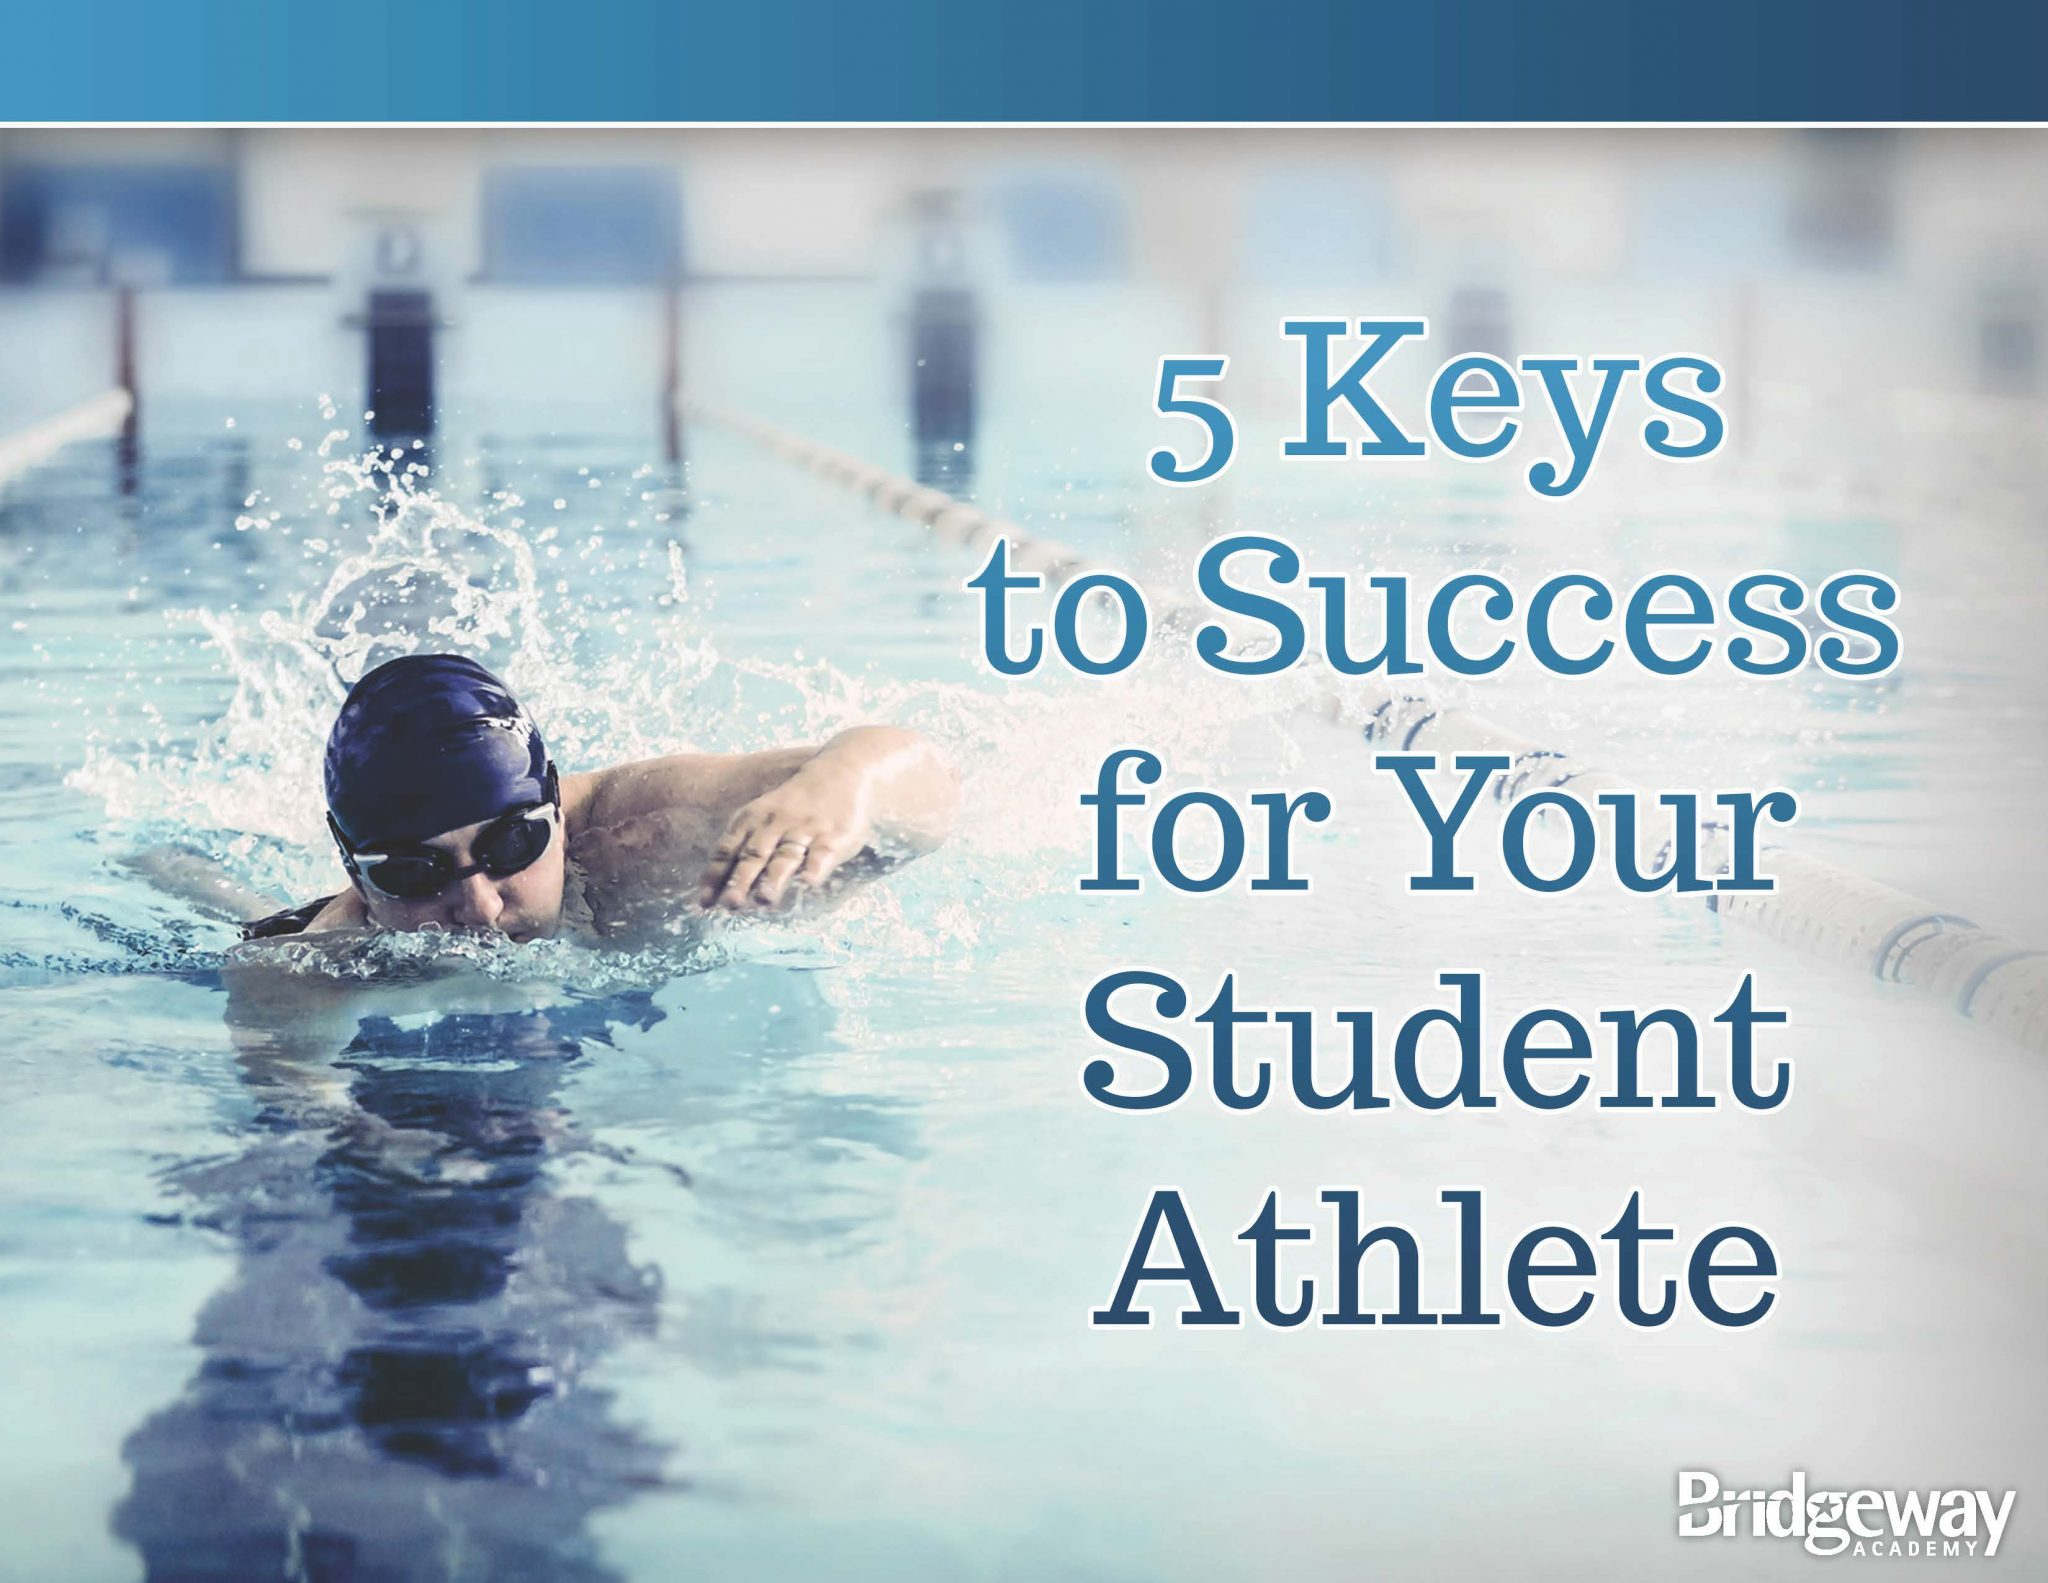 student athlete, 5 Keys to Success as a Student-Athlete